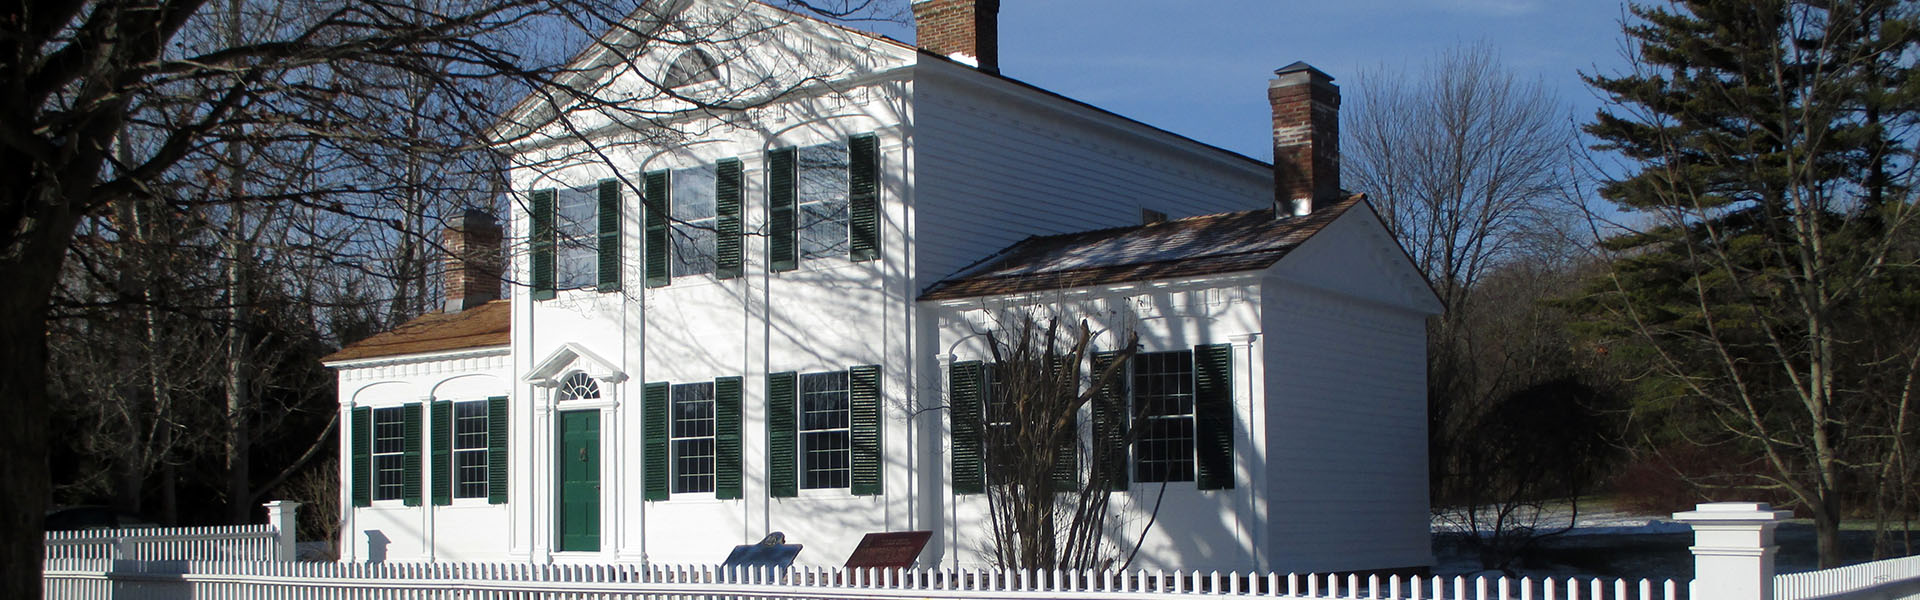 Barnum House, Grafton